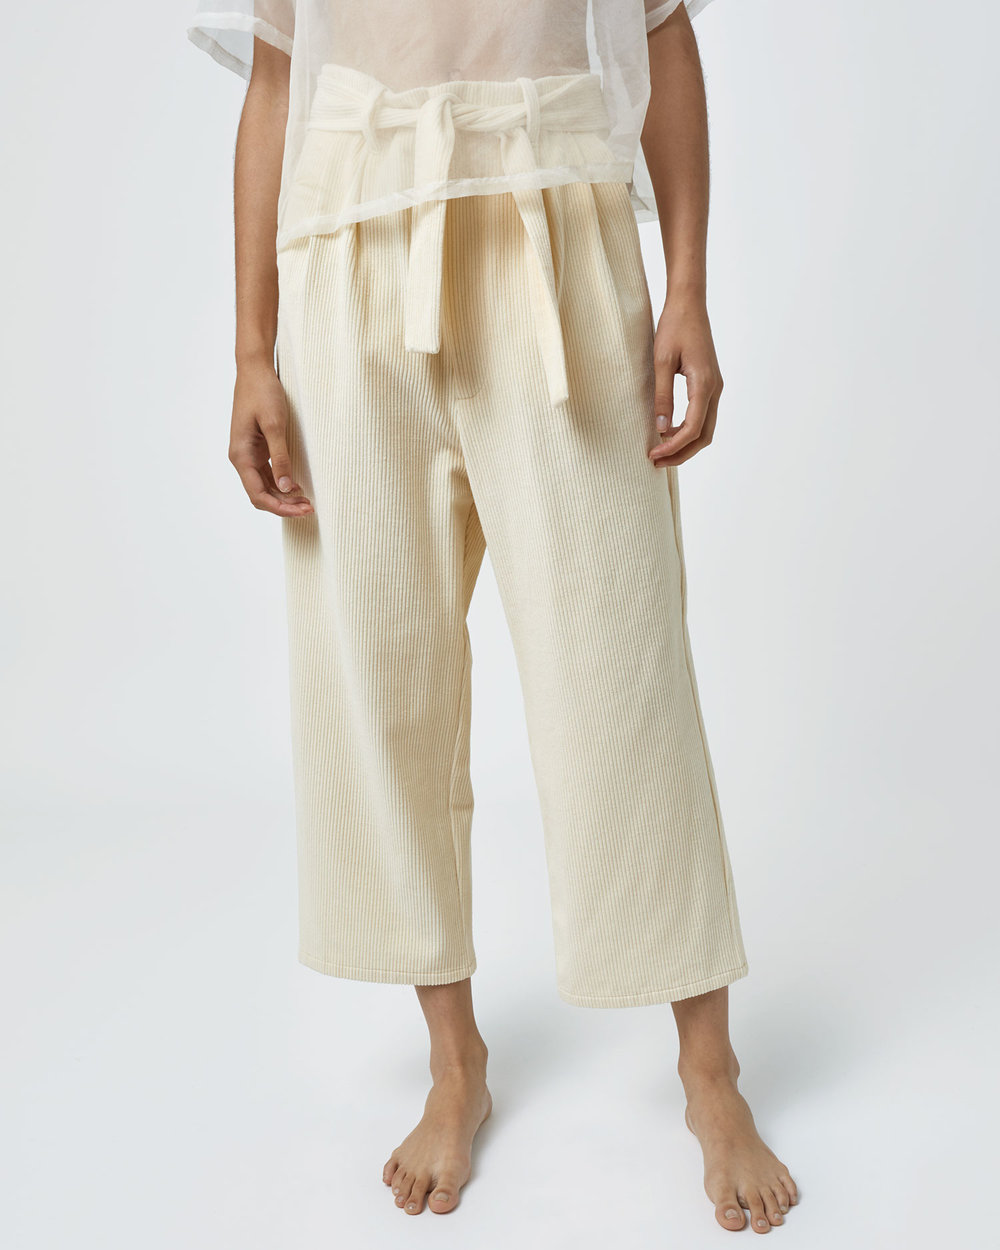 Shop Paperbag Pants by One DNA